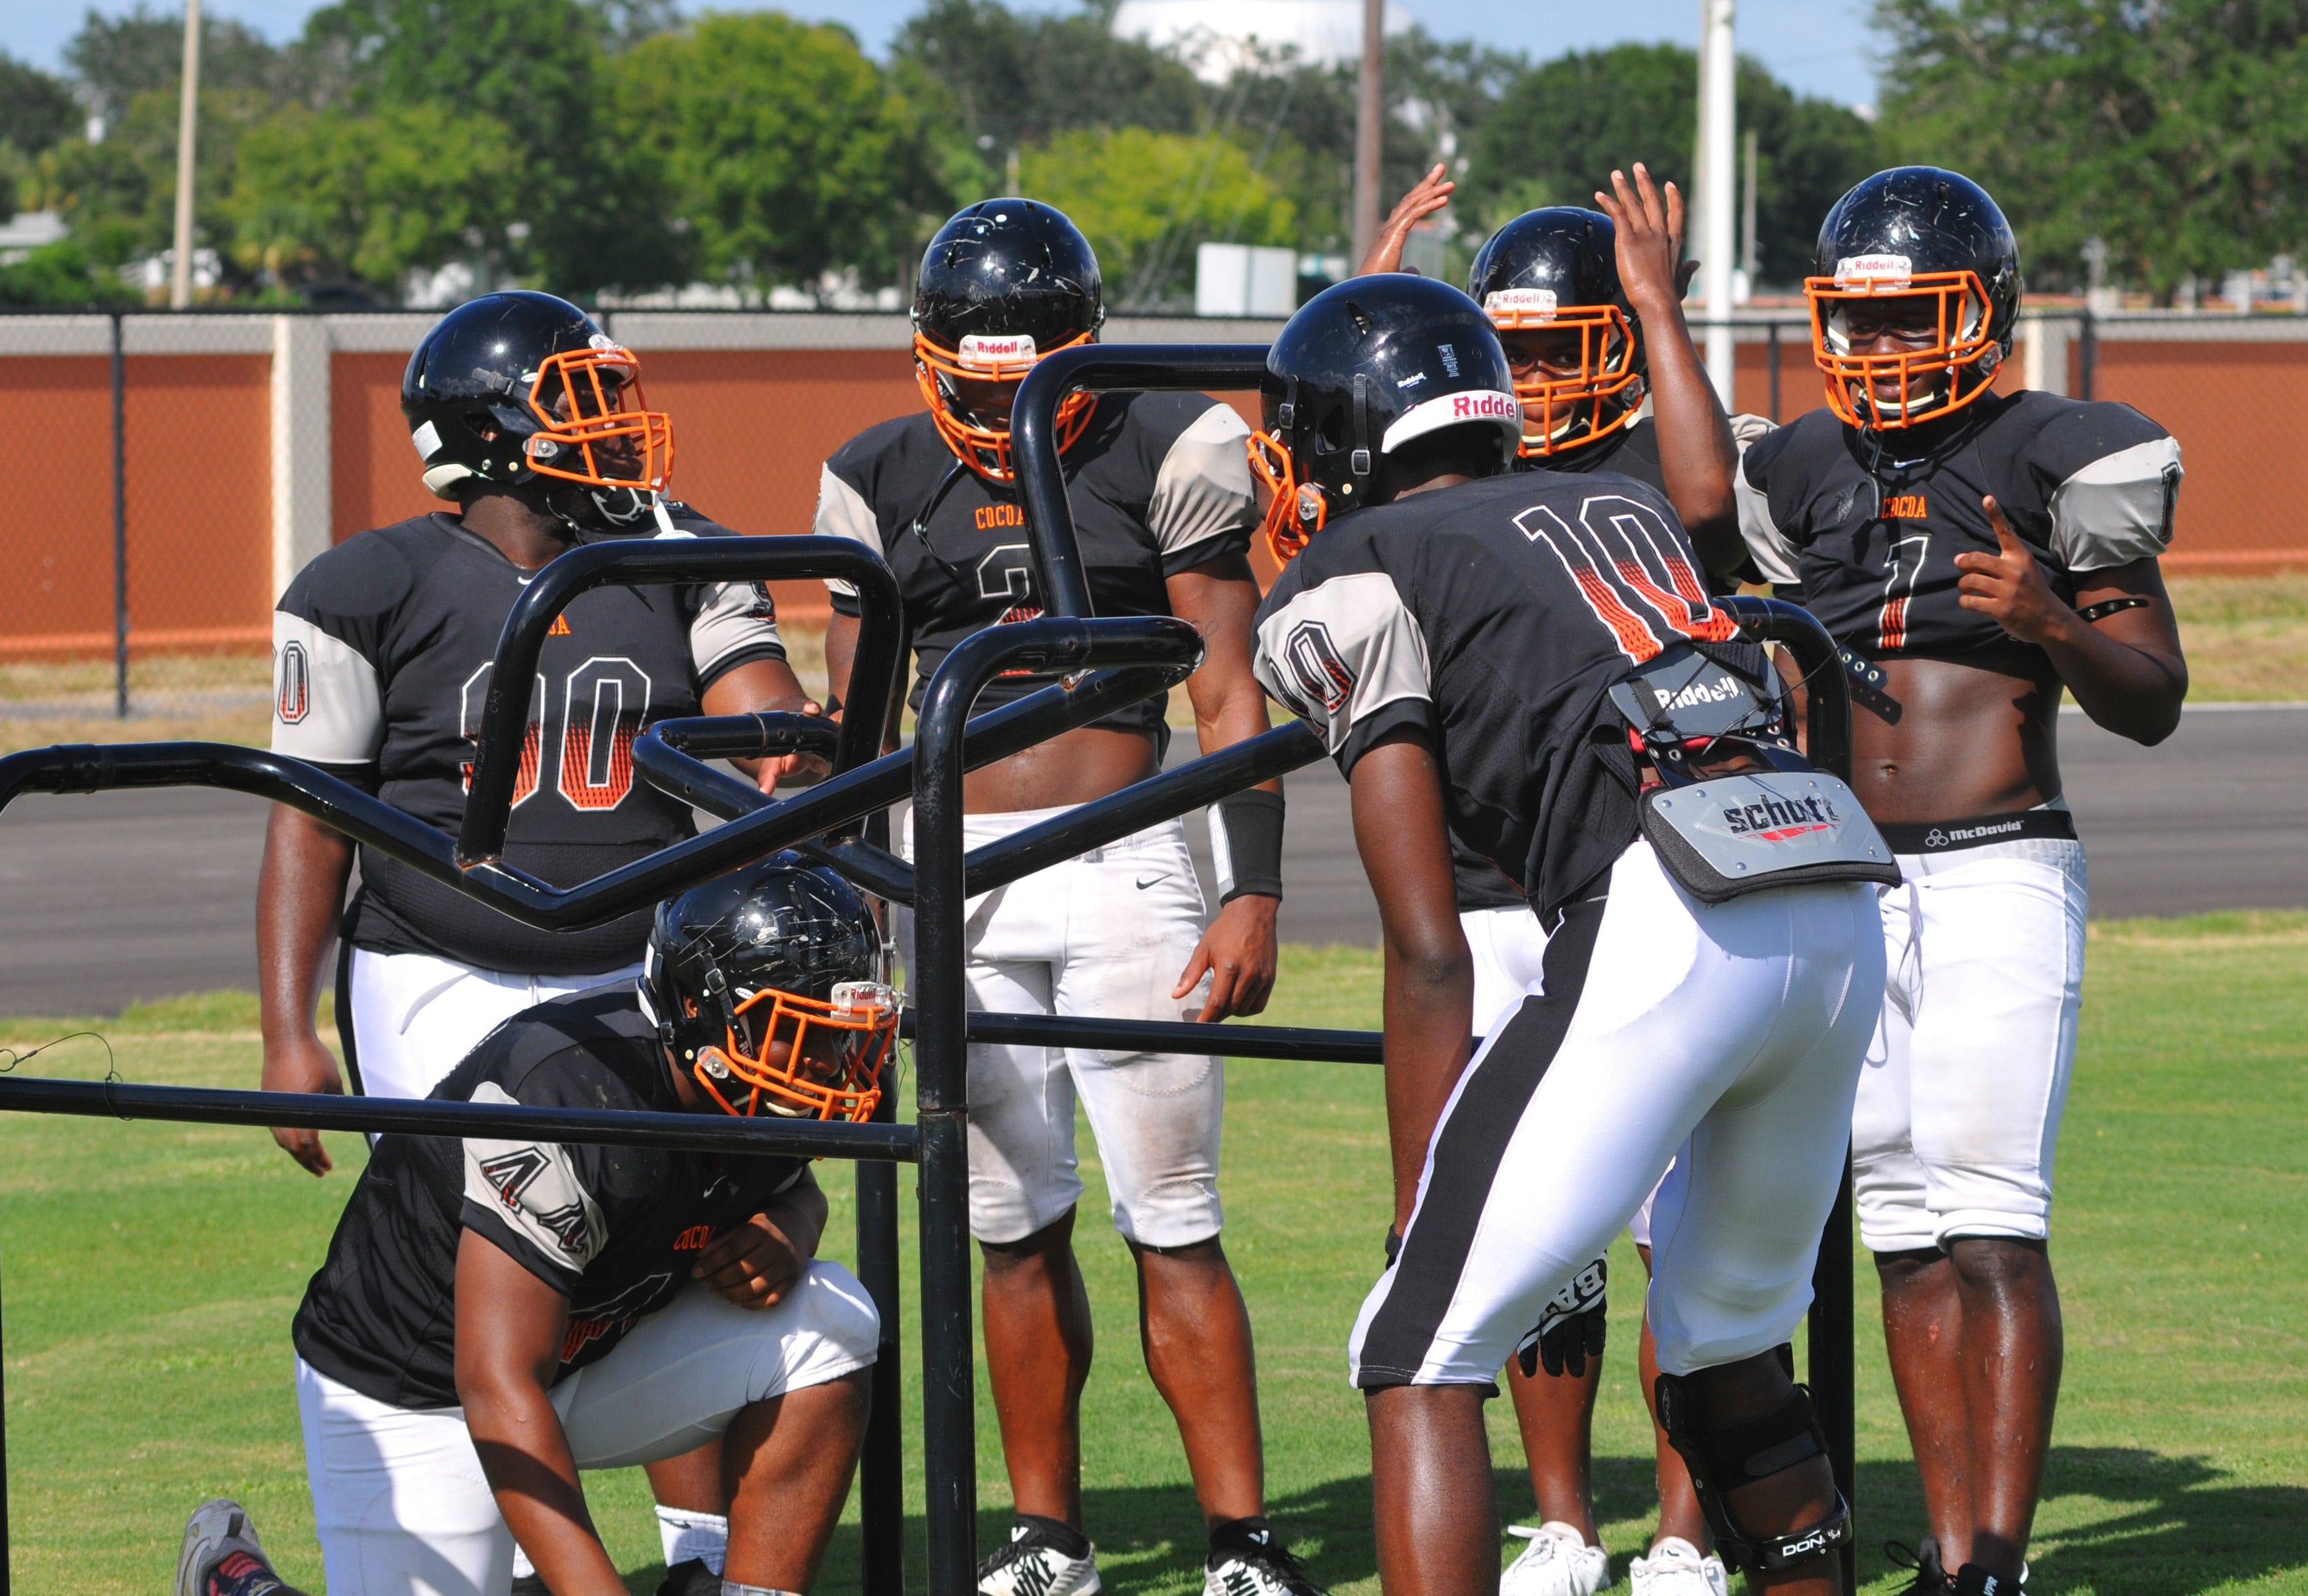 636390262651687798-Cocoa-High-Football-Practice-25 Cocoa goes for fifth state football title